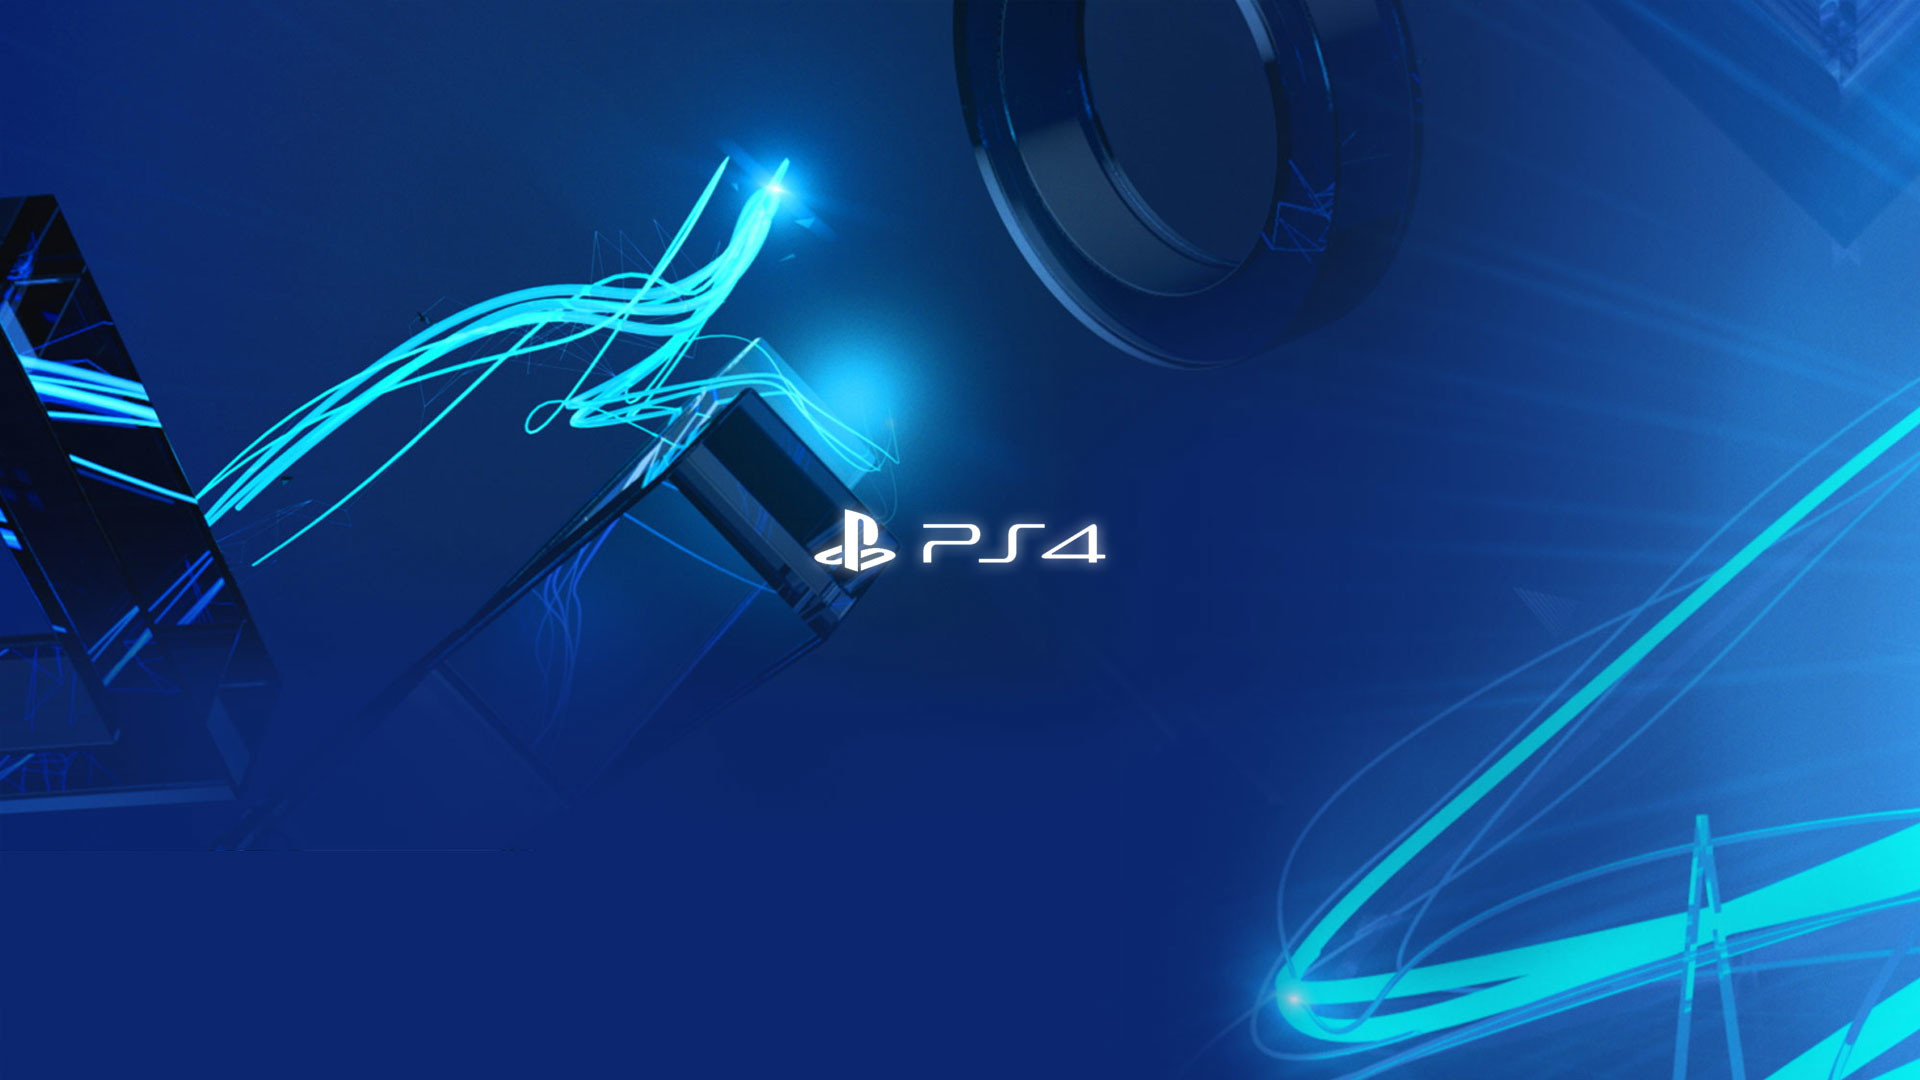 playstation 4 wallpaper hd (76+ images)